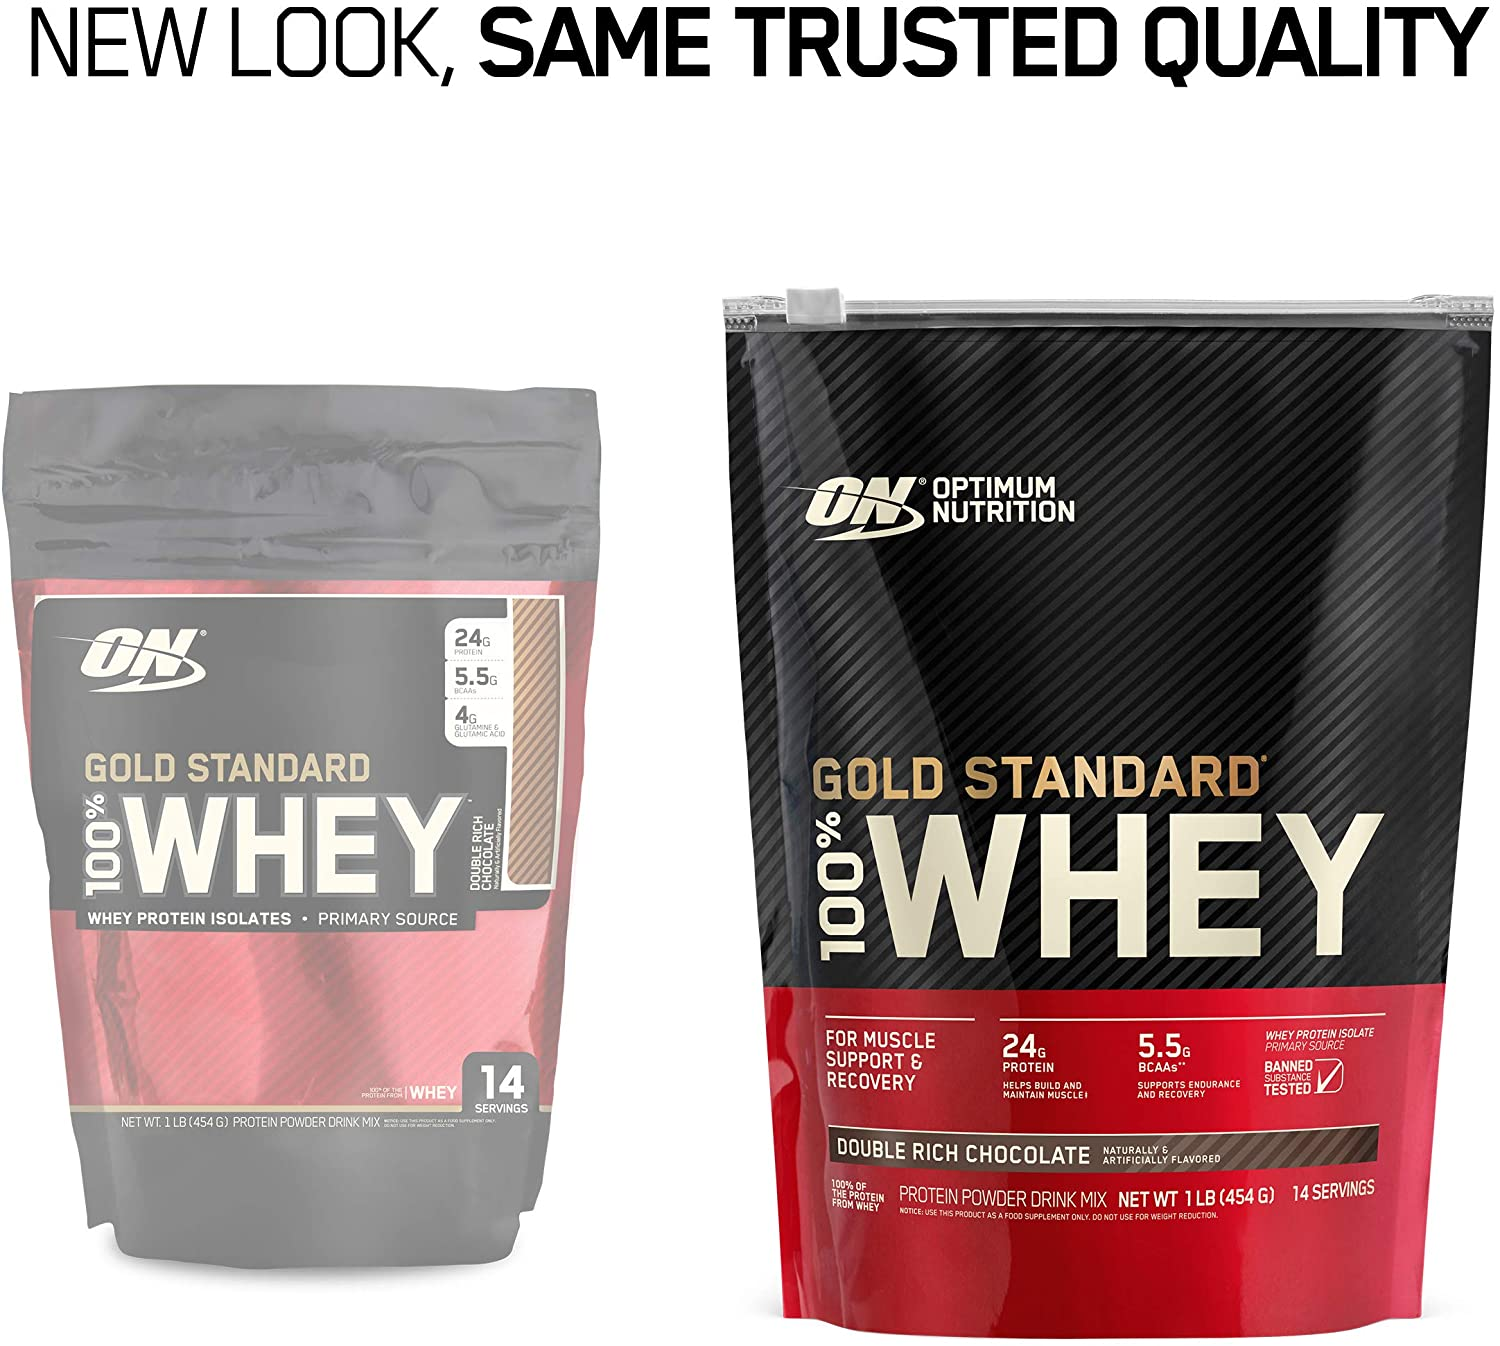 Optimum-Nutrition-GSW_1LB_NEW-LOOK.jpg